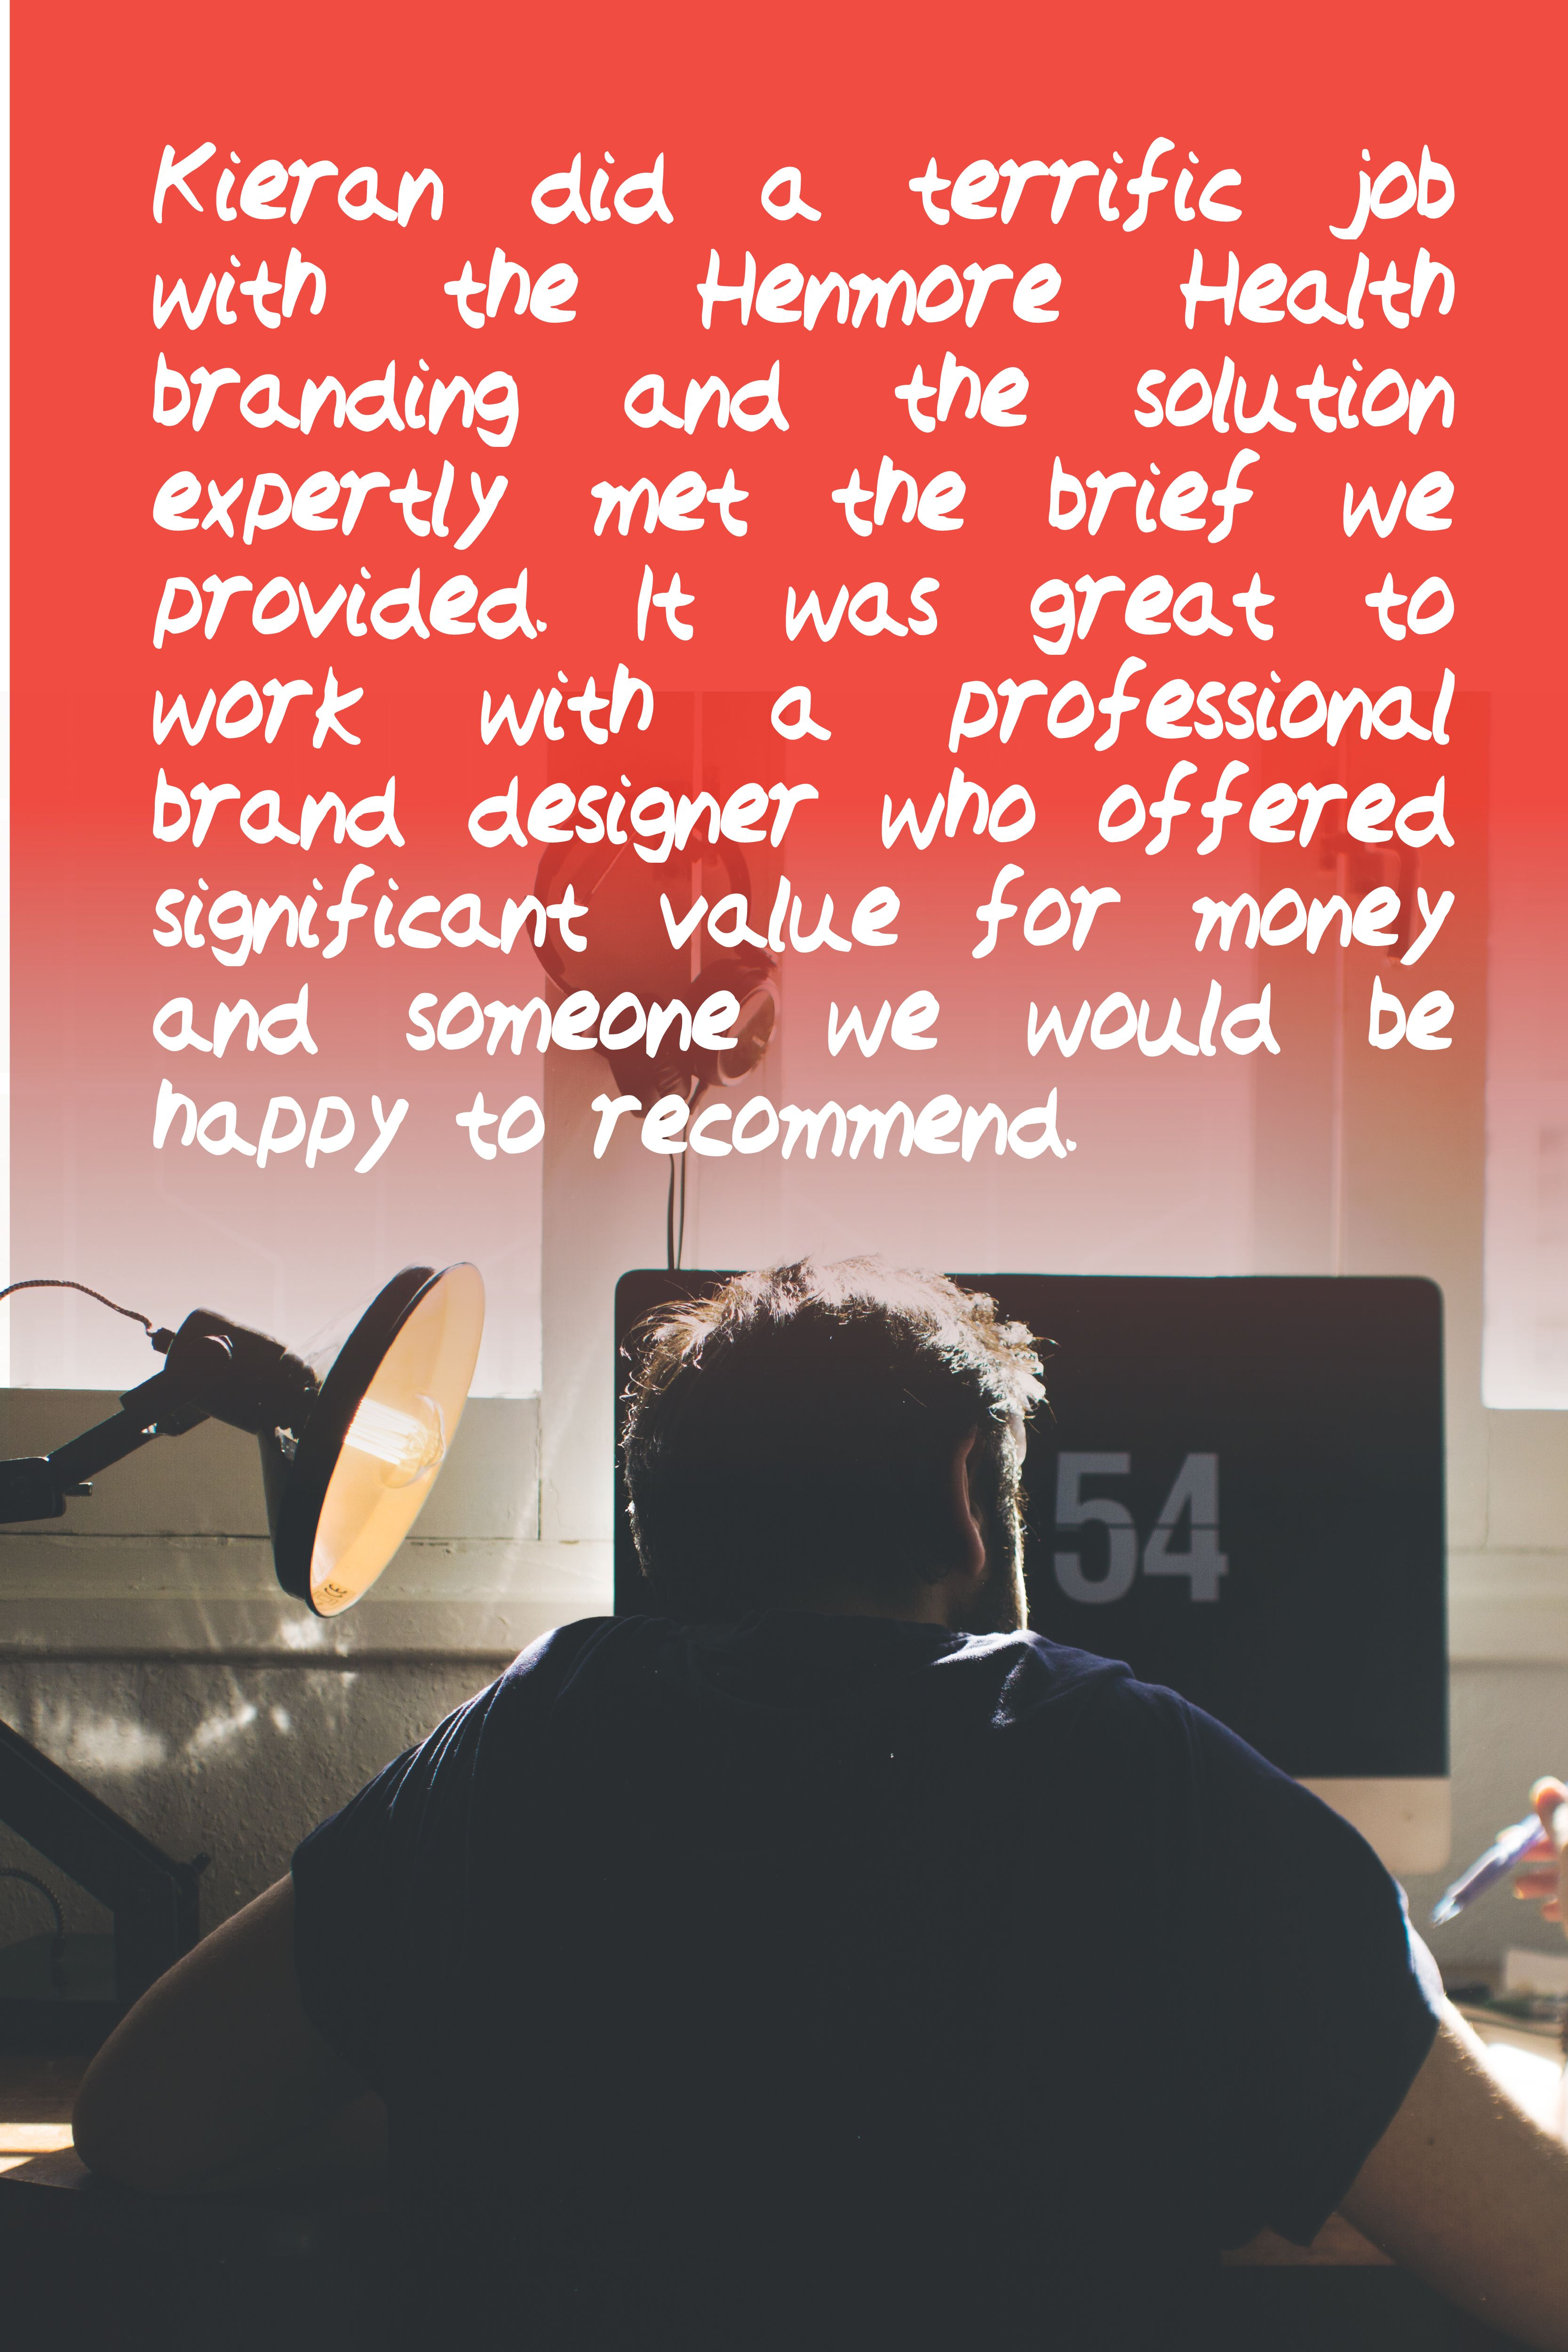 Generous words from Henmore Health regarding their new branding…  Kieran did a terrific job with the Henmore Health branding and the solution expertly met the brief we provided. It was great to work with a professional brand designer who offered significant value for money and someone we would be happy to recommend.